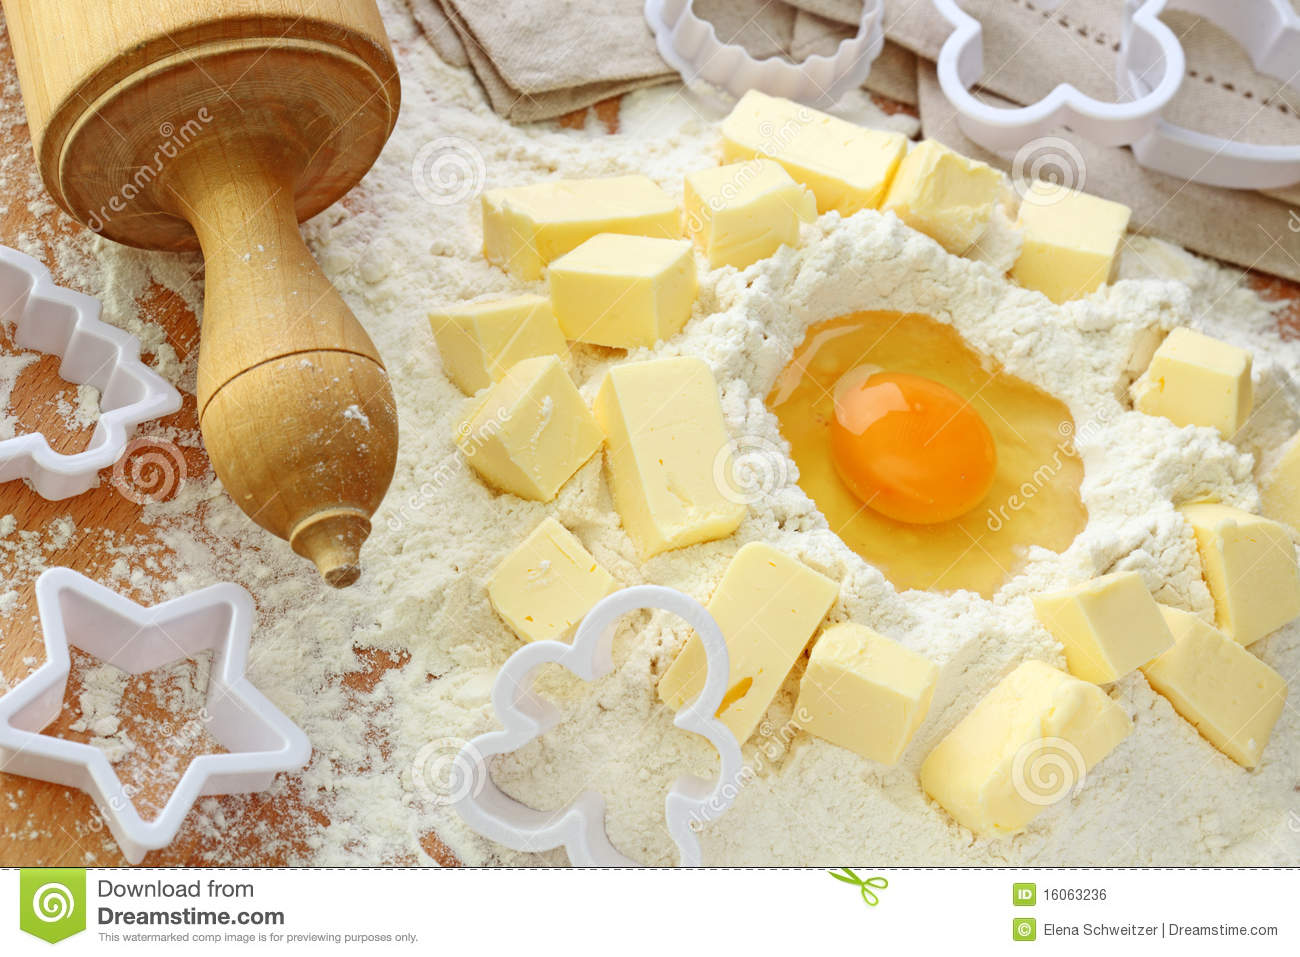 Baking ingredients royalty free stock image image 16063236 for Shortcrust pastry ingredients